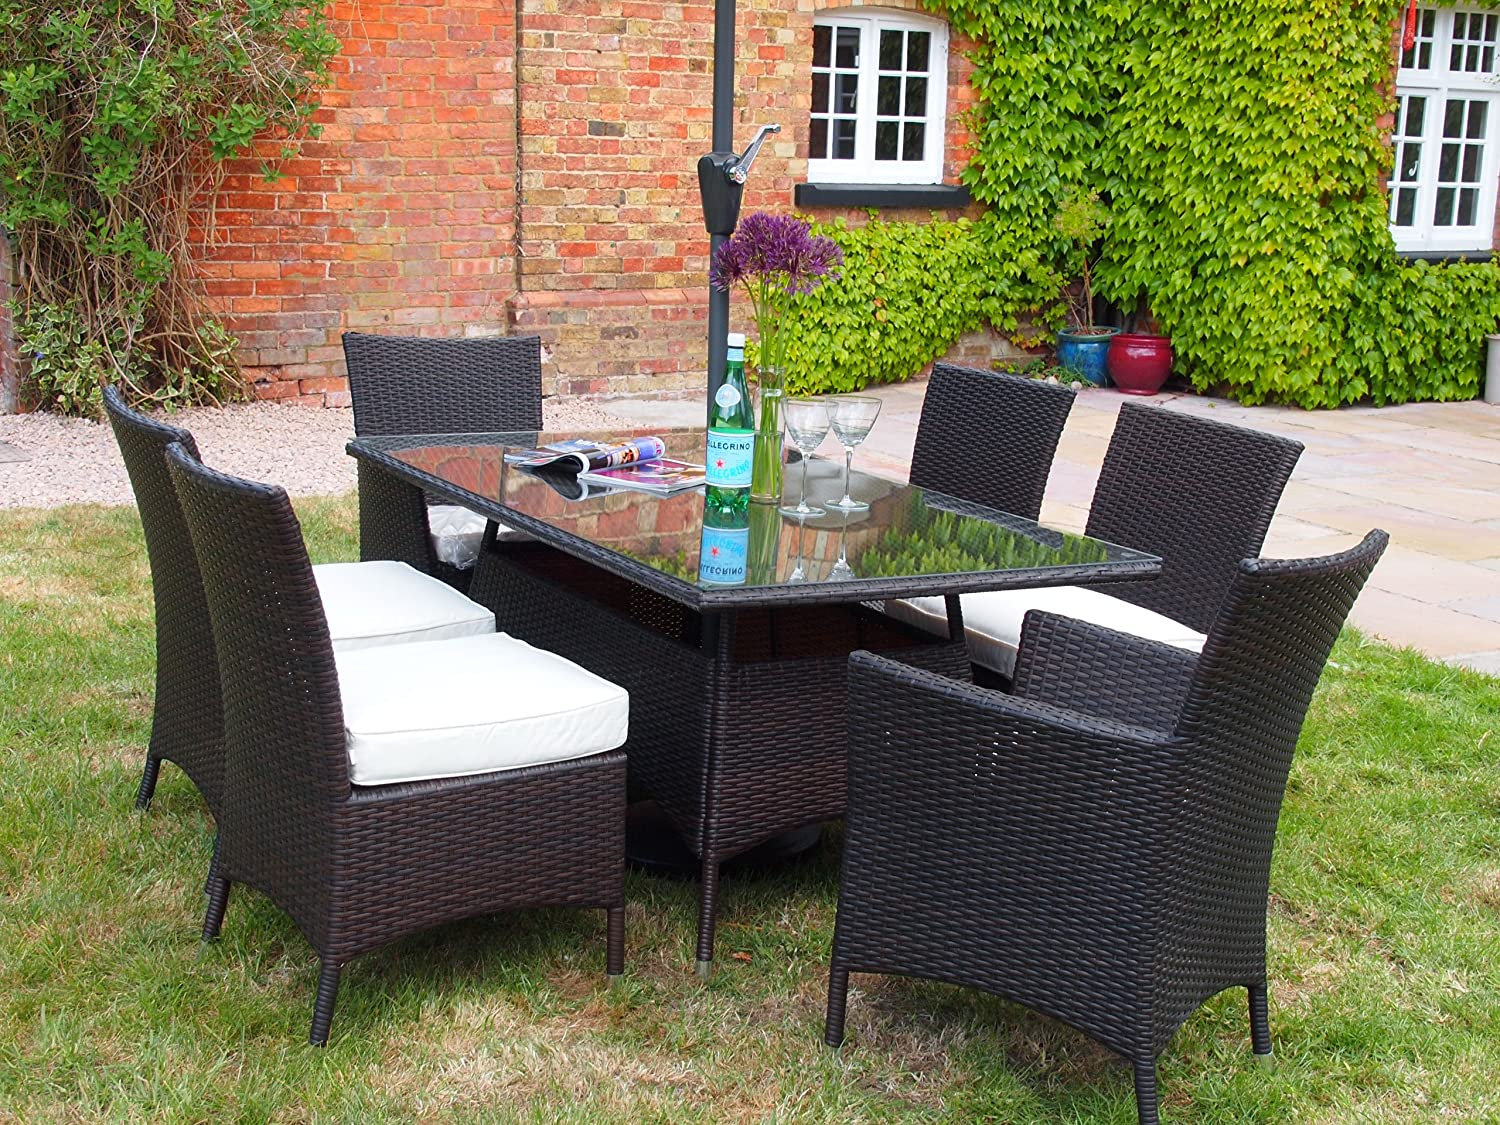 Barcelona Rectangular Grey Rattan Garden Furniture Table And 6 Chairs  Dining Set: Amazon.co.uk: Kitchen U0026 Home